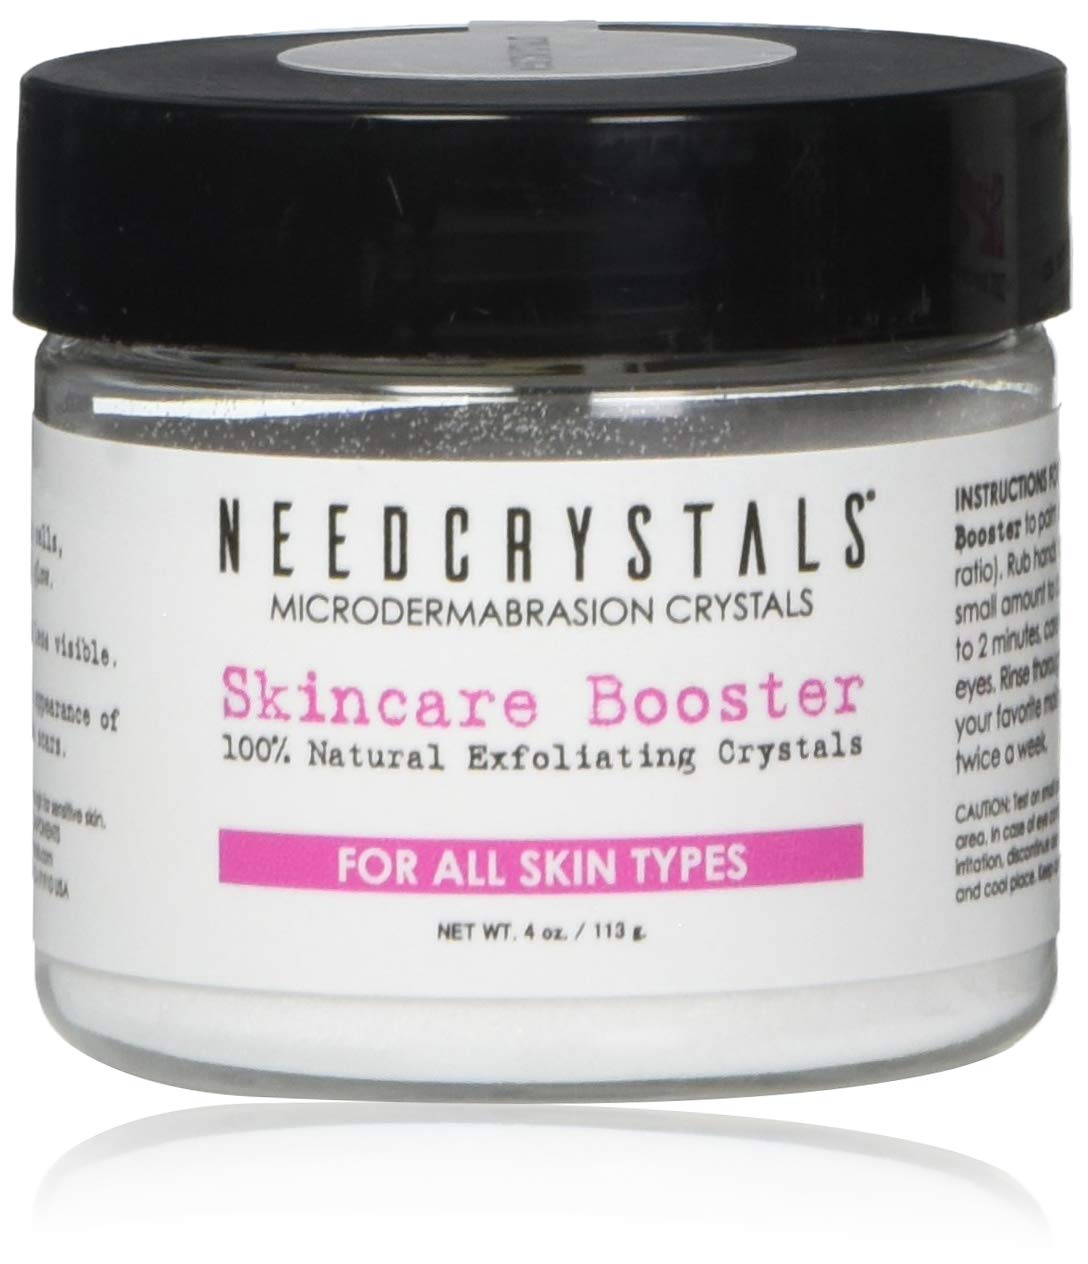 NeedCrystals Microdermabrasion Crystals 4 oz. / 113 gr. DIY Face Scrub. Natural Facial Exfoliator for Dull or Dry Skin Improves Acne Scars, Blackheads, Pore Size, Wrinkles, Blemishes & Skin Texture: Beauty